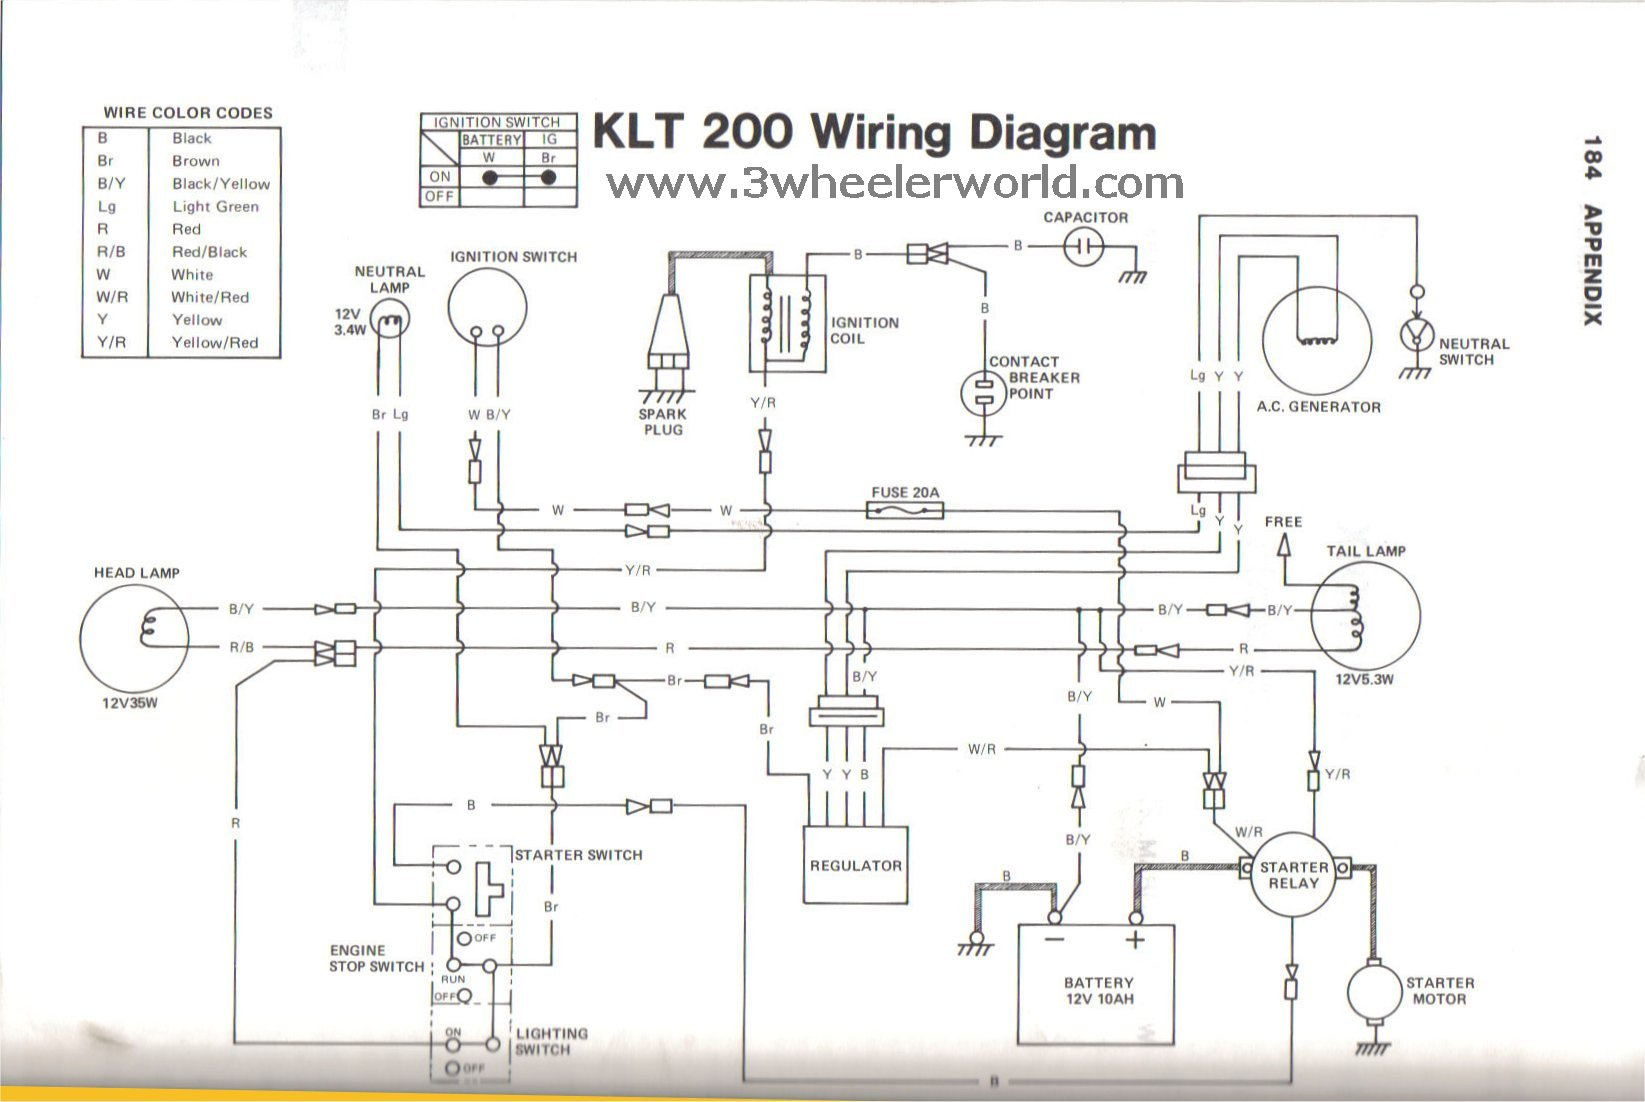 84 Kawasaki Motorcycle Wiring Diagram Auto Electrical Vn750 1983 Klt 200 Example Rh Cranejapan Co 1982 750